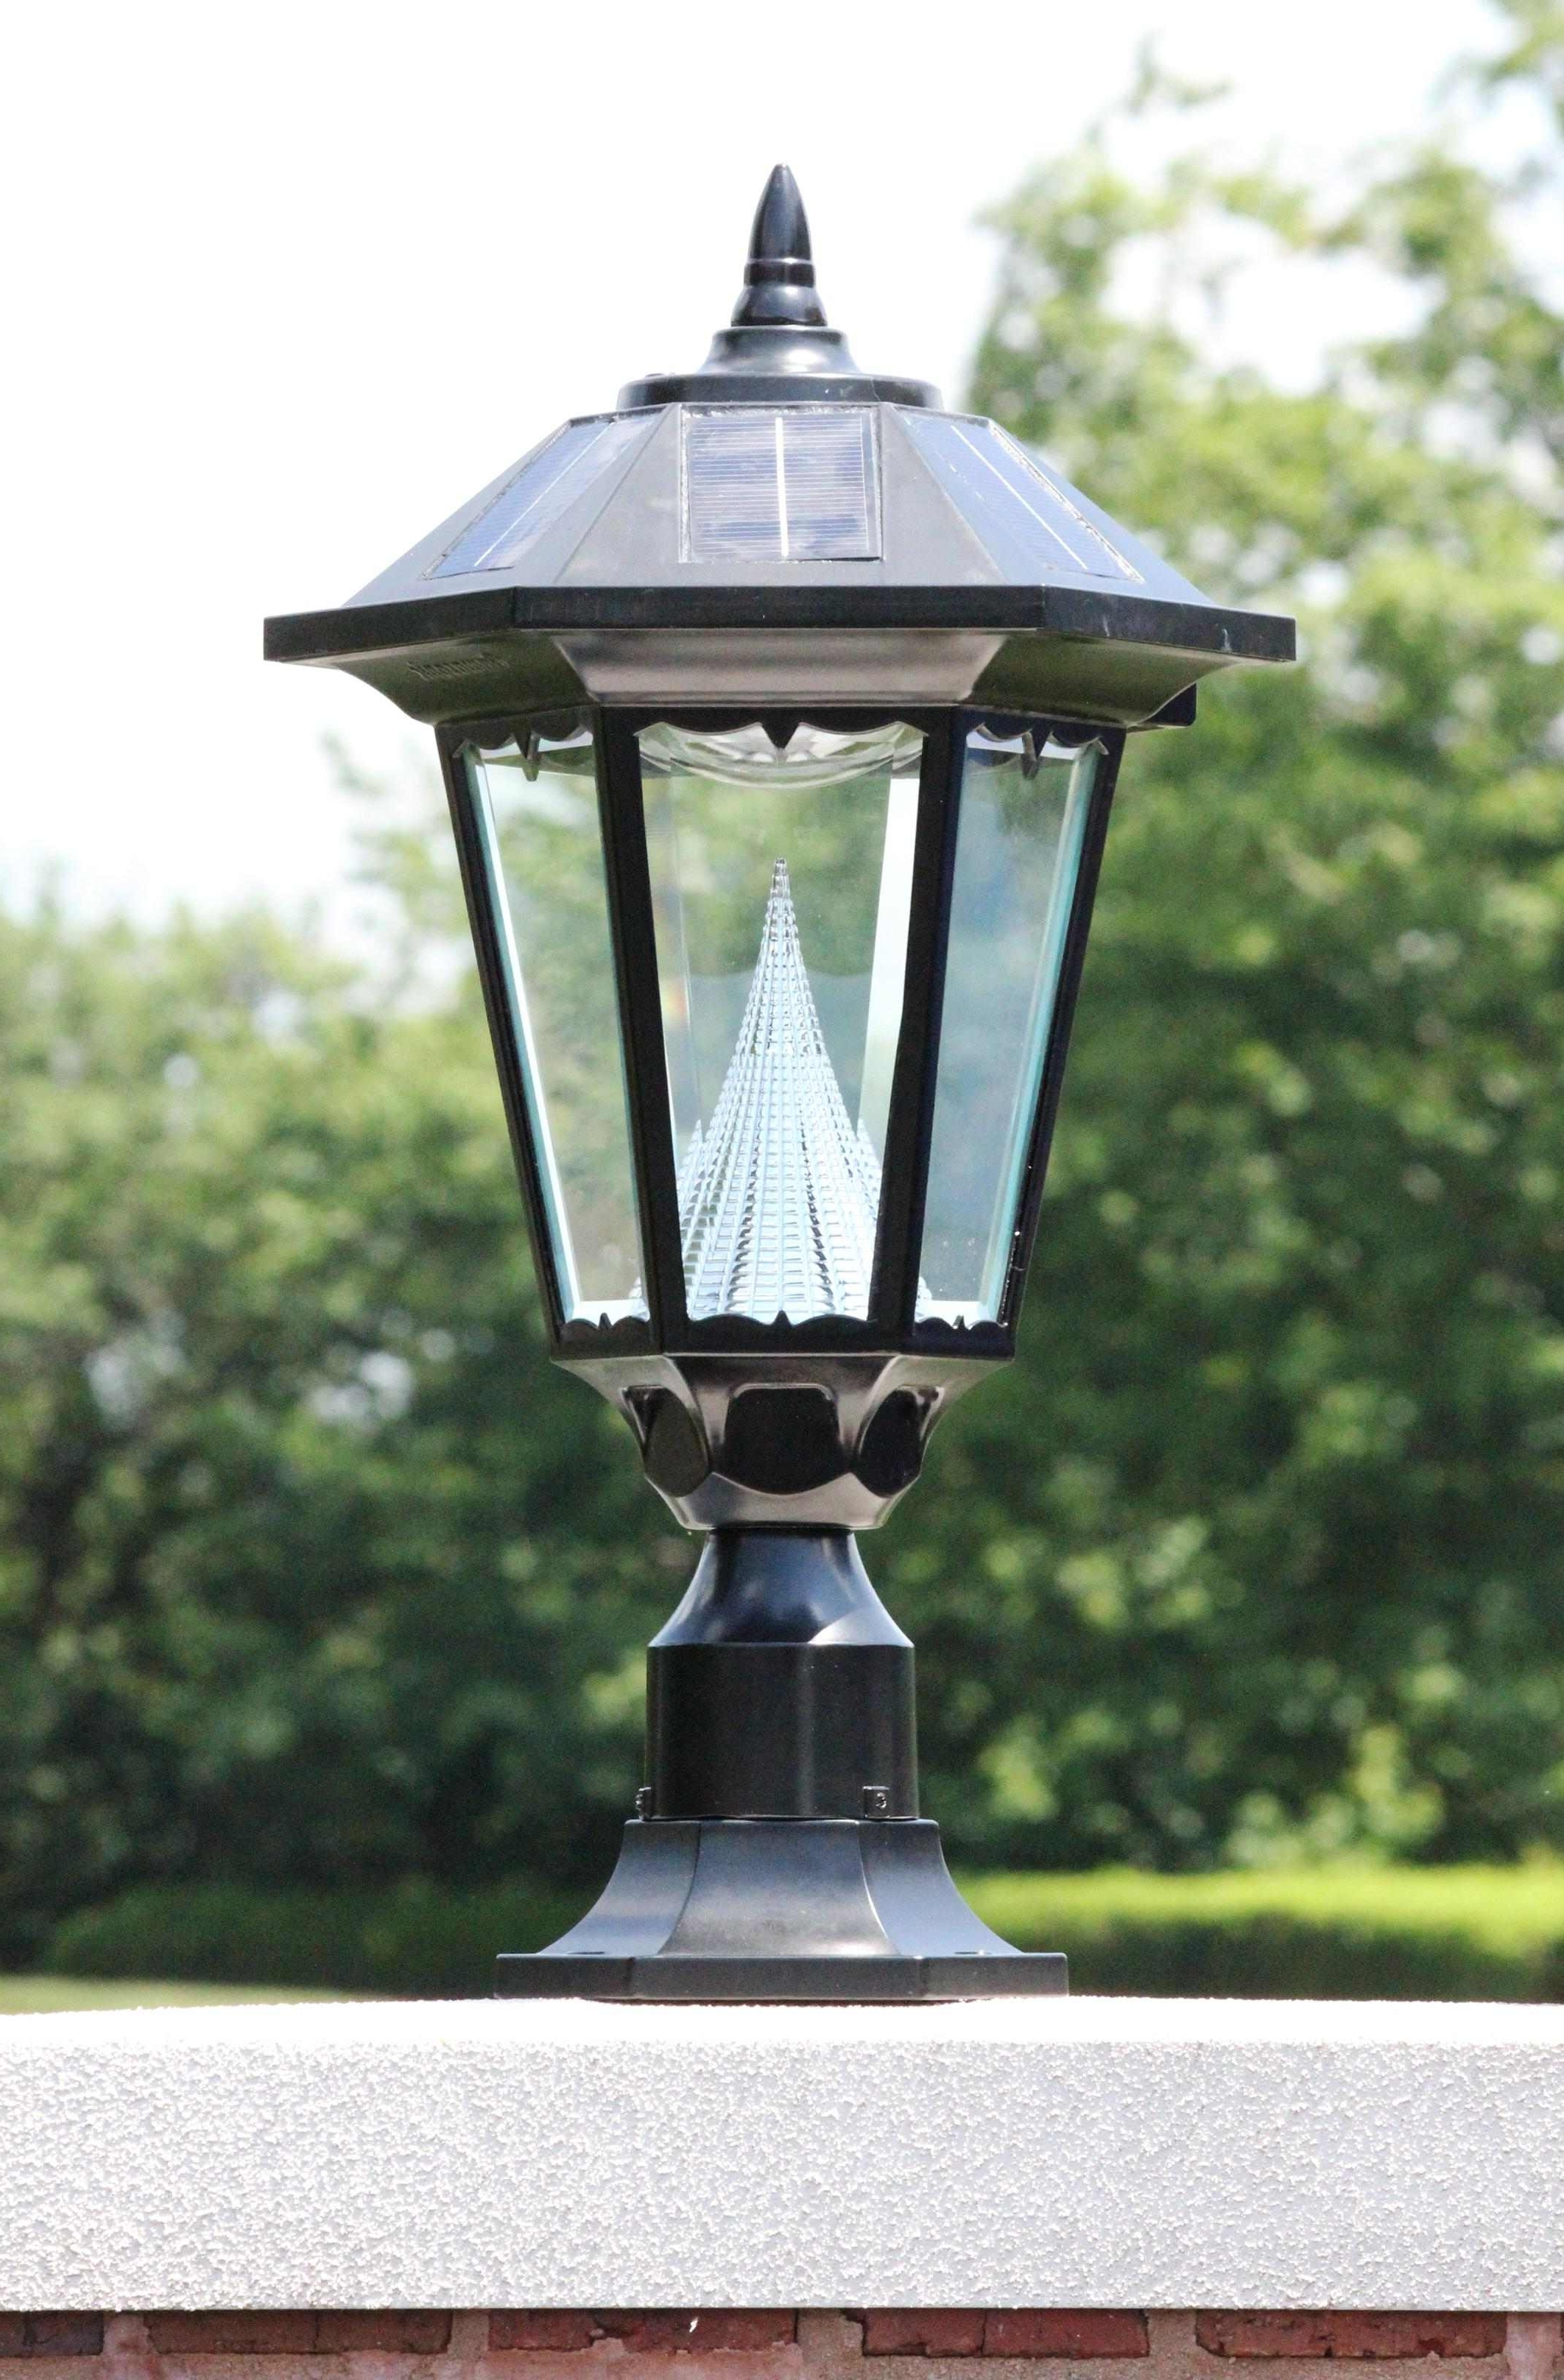 Lamp: Home Lighting Spectacular Outdoor Flood Lights Home Depot Throughout Most Current Solar Driveway Lights At Home Depot (View 18 of 20)